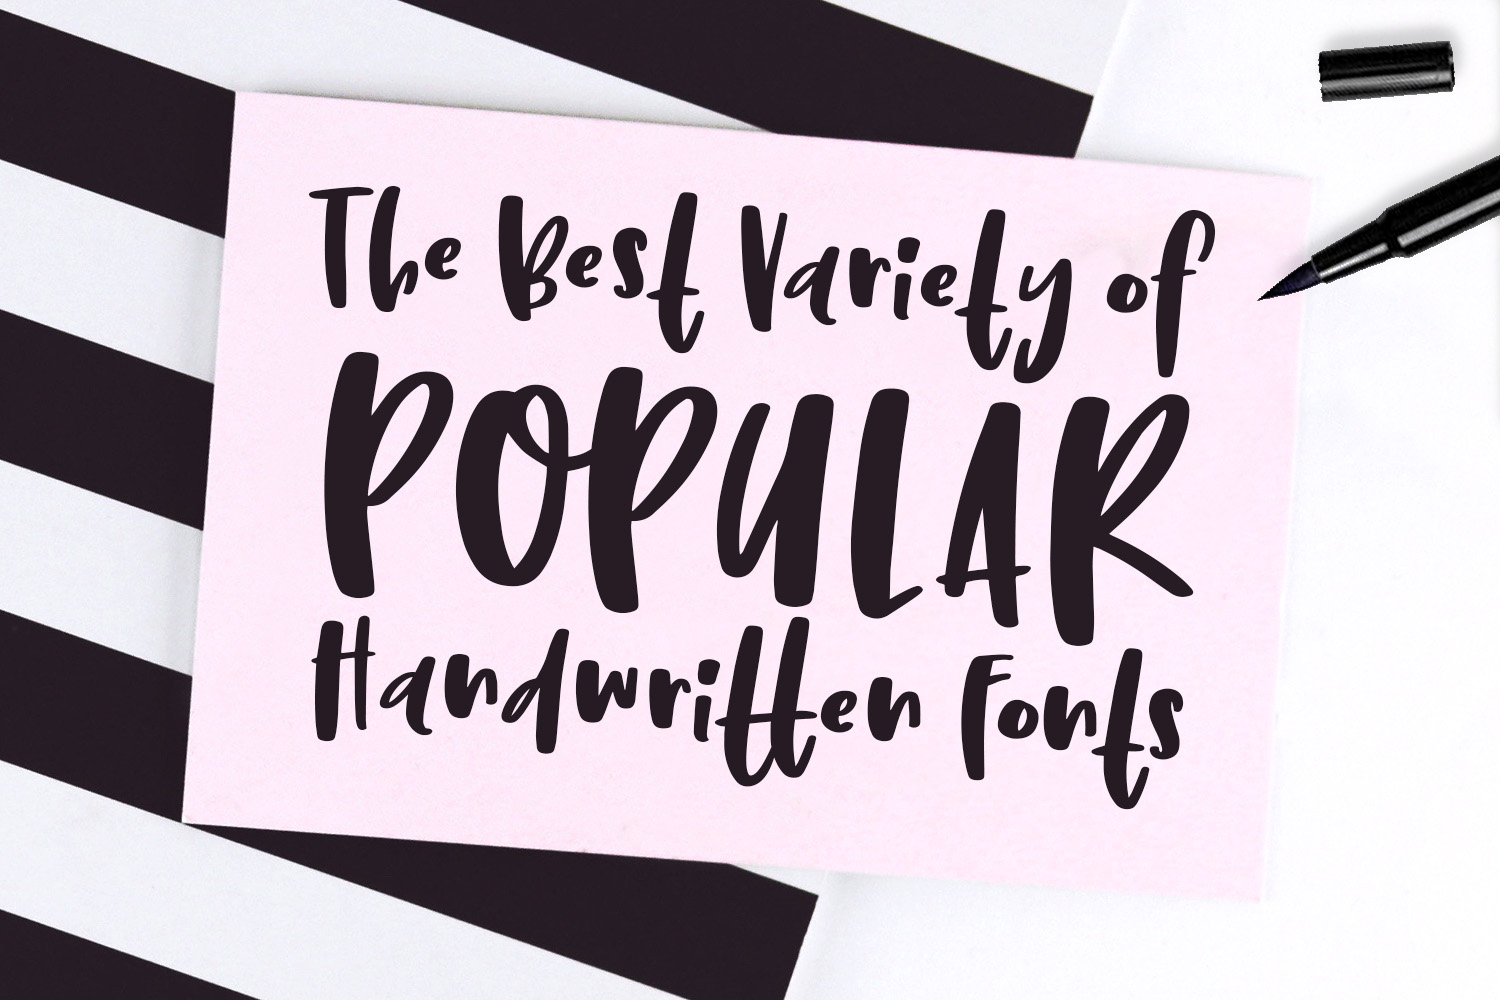 The Best Variety of Popular Handwritten Fonts